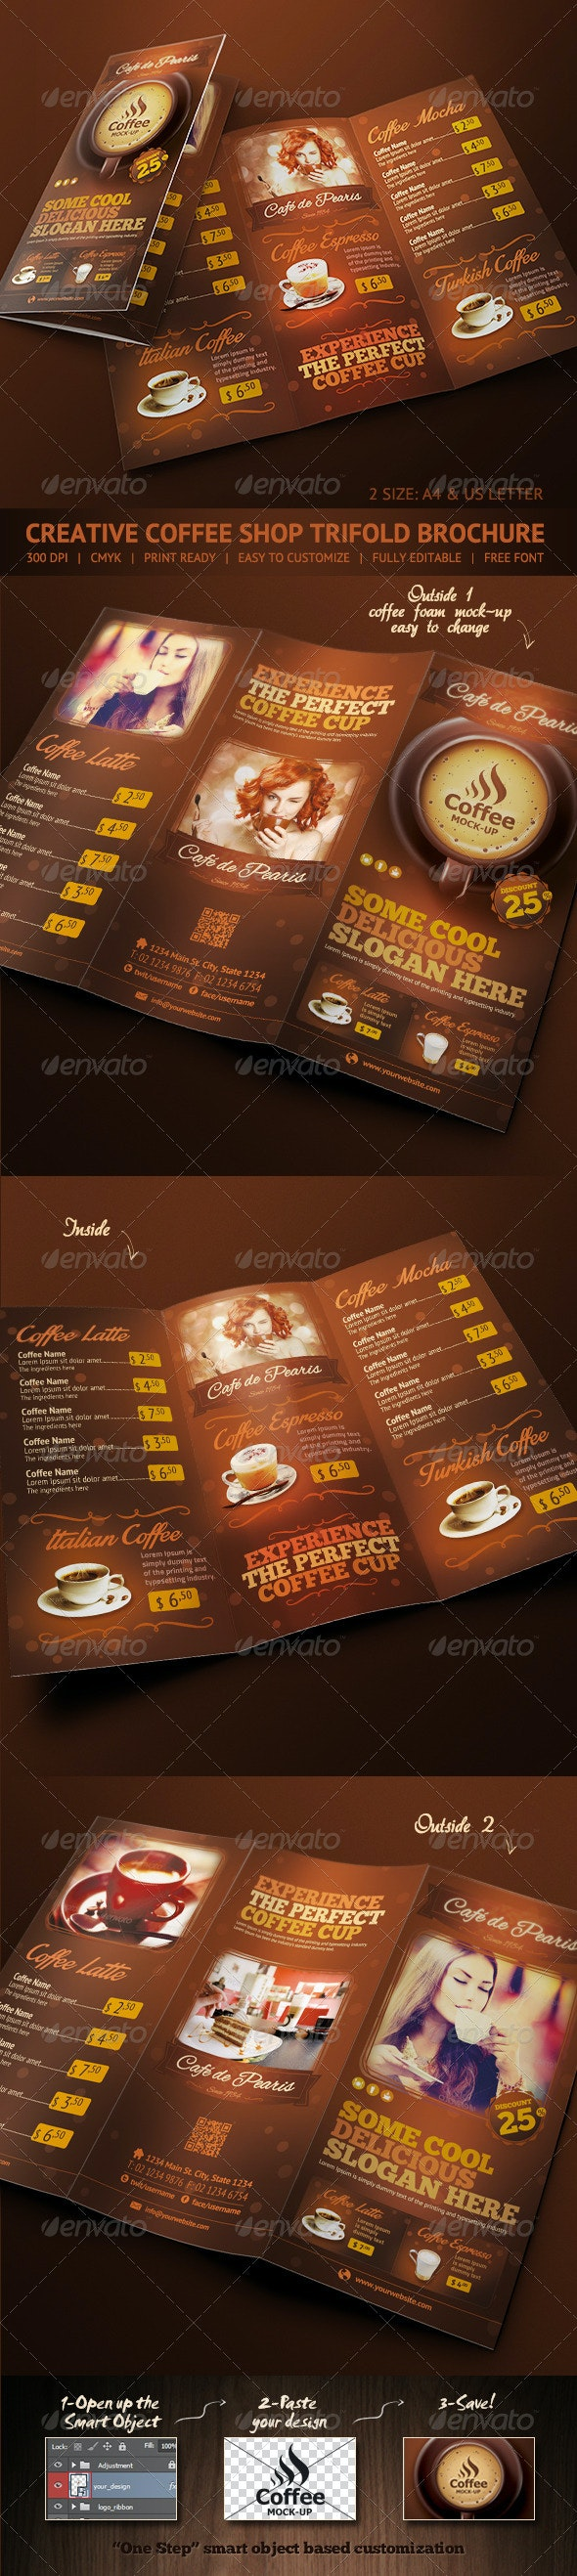 Trifold Brochure - Coffee Menu - Food Menus Print Templates